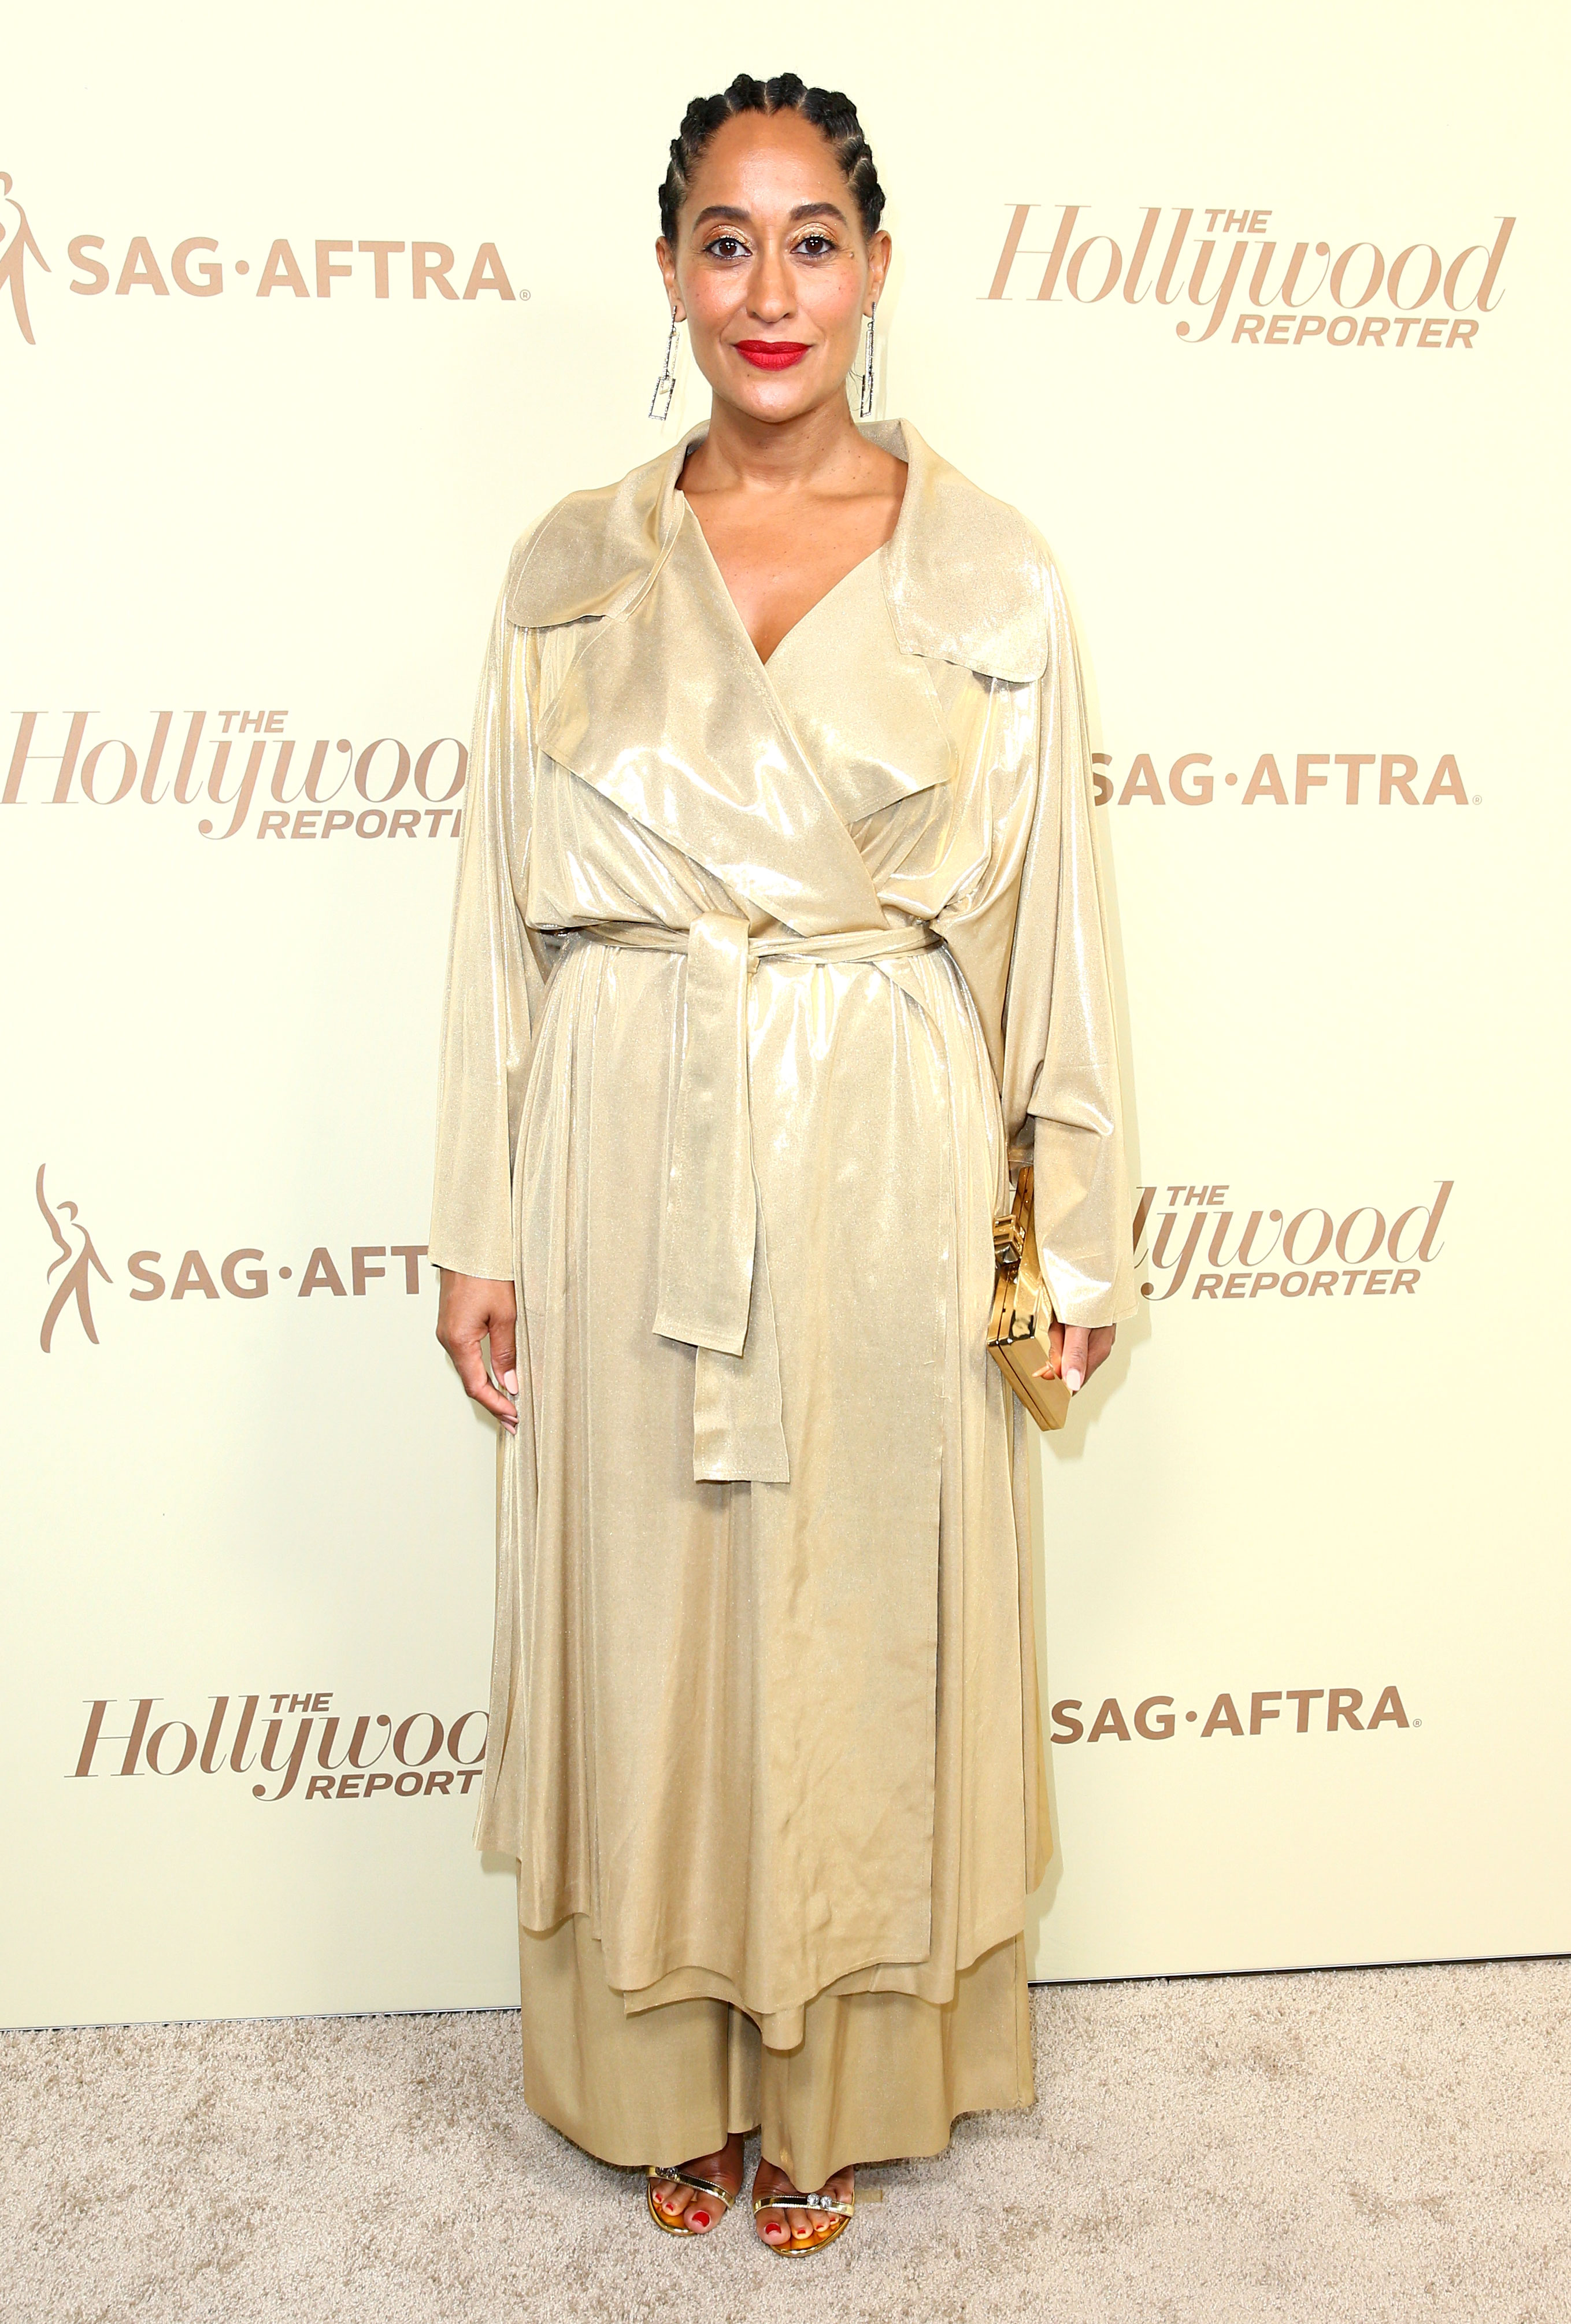 tracee-ellis-ross - At a pre-Emmys bash, the nominee was a golden goddess in a drape-y Norma Kamali pantsuit.